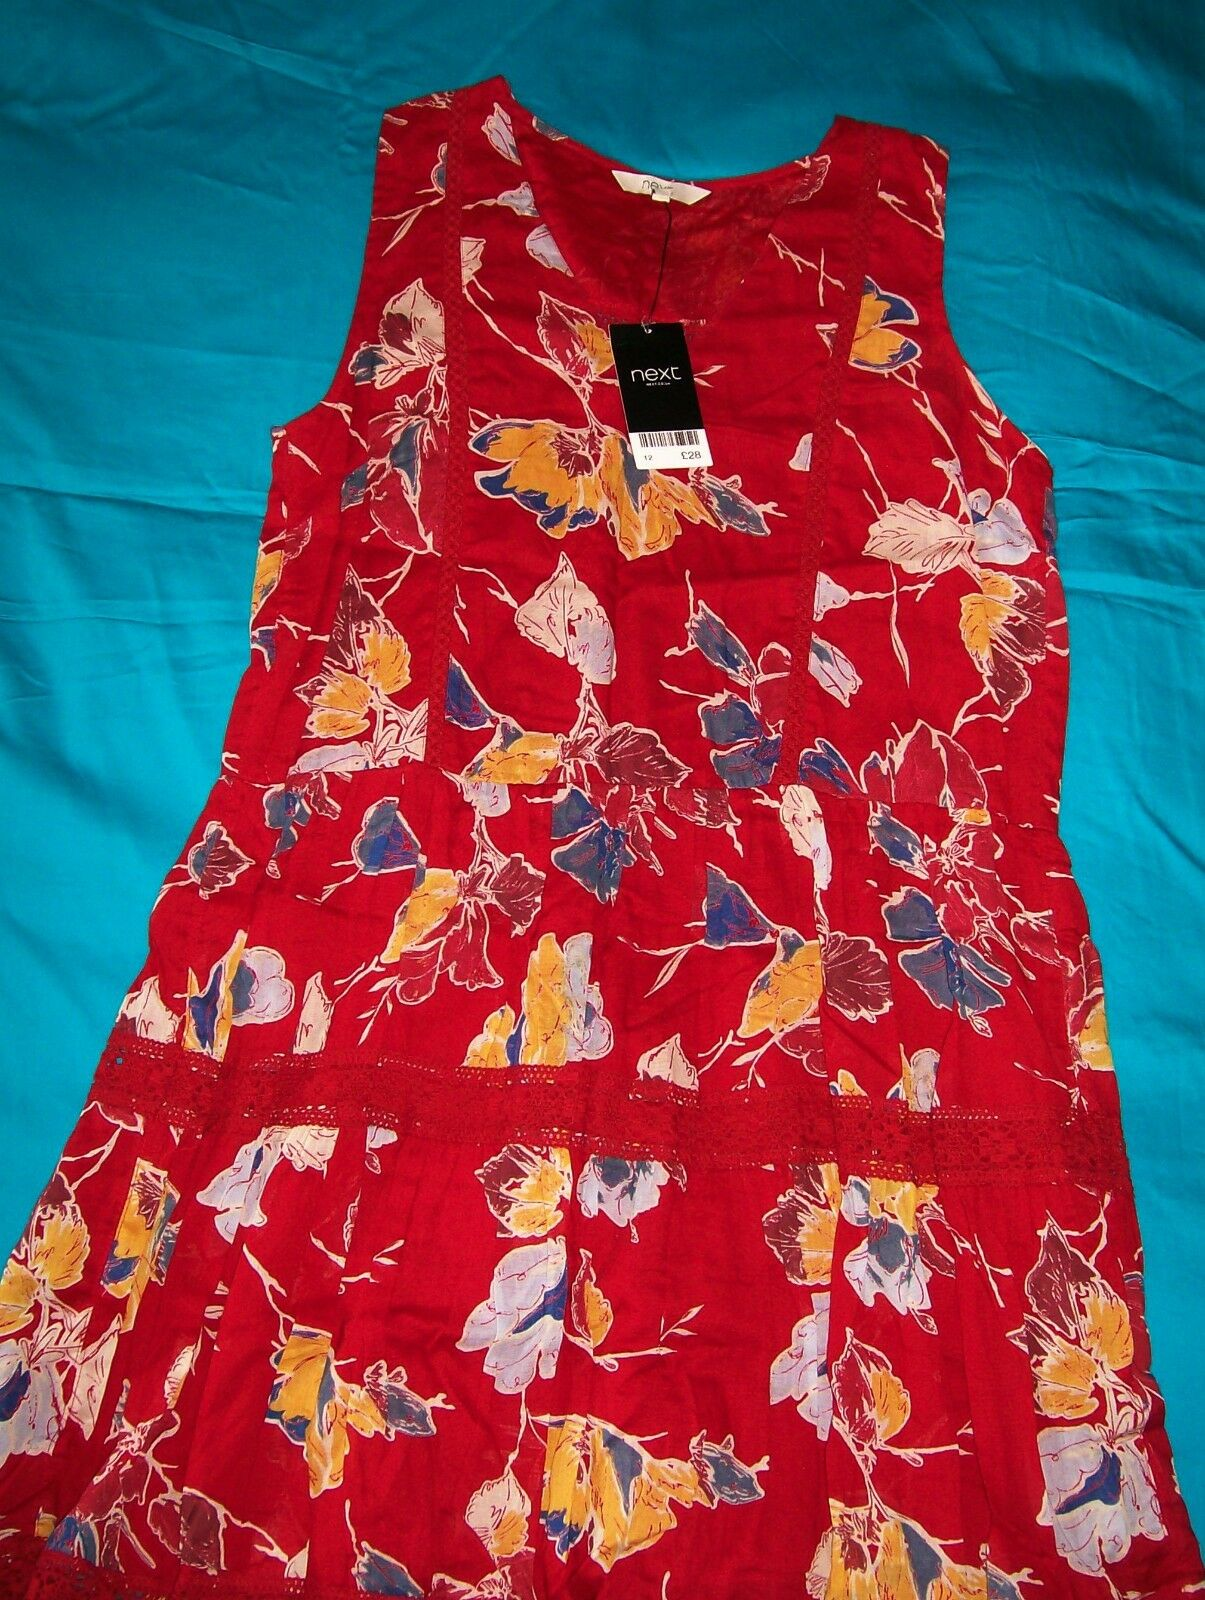 Next Floral Print Dress red 100% cotton knee length Size 14 Brand New Tags BNWT